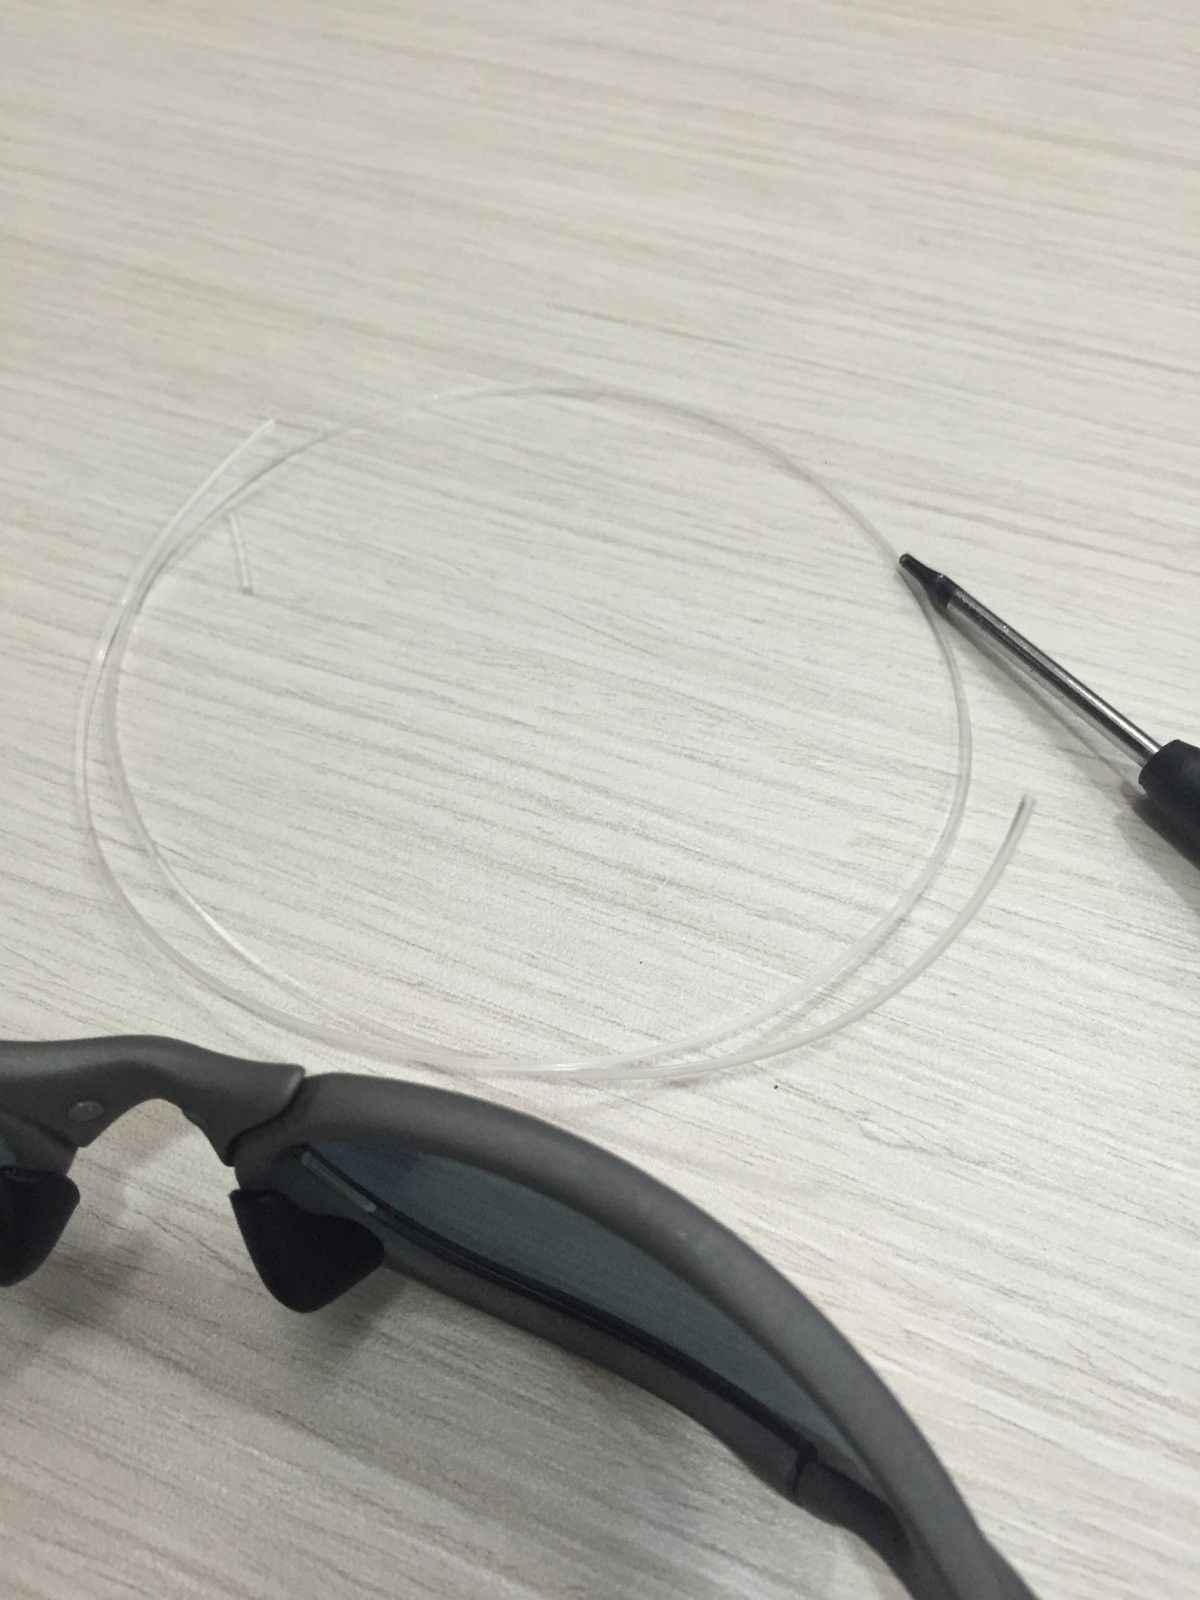 Oakley Penny - X - Metal Refinished - Aftermarket Wiggly Lenses - Fix - 2016-03-16 12.32.58.jpg